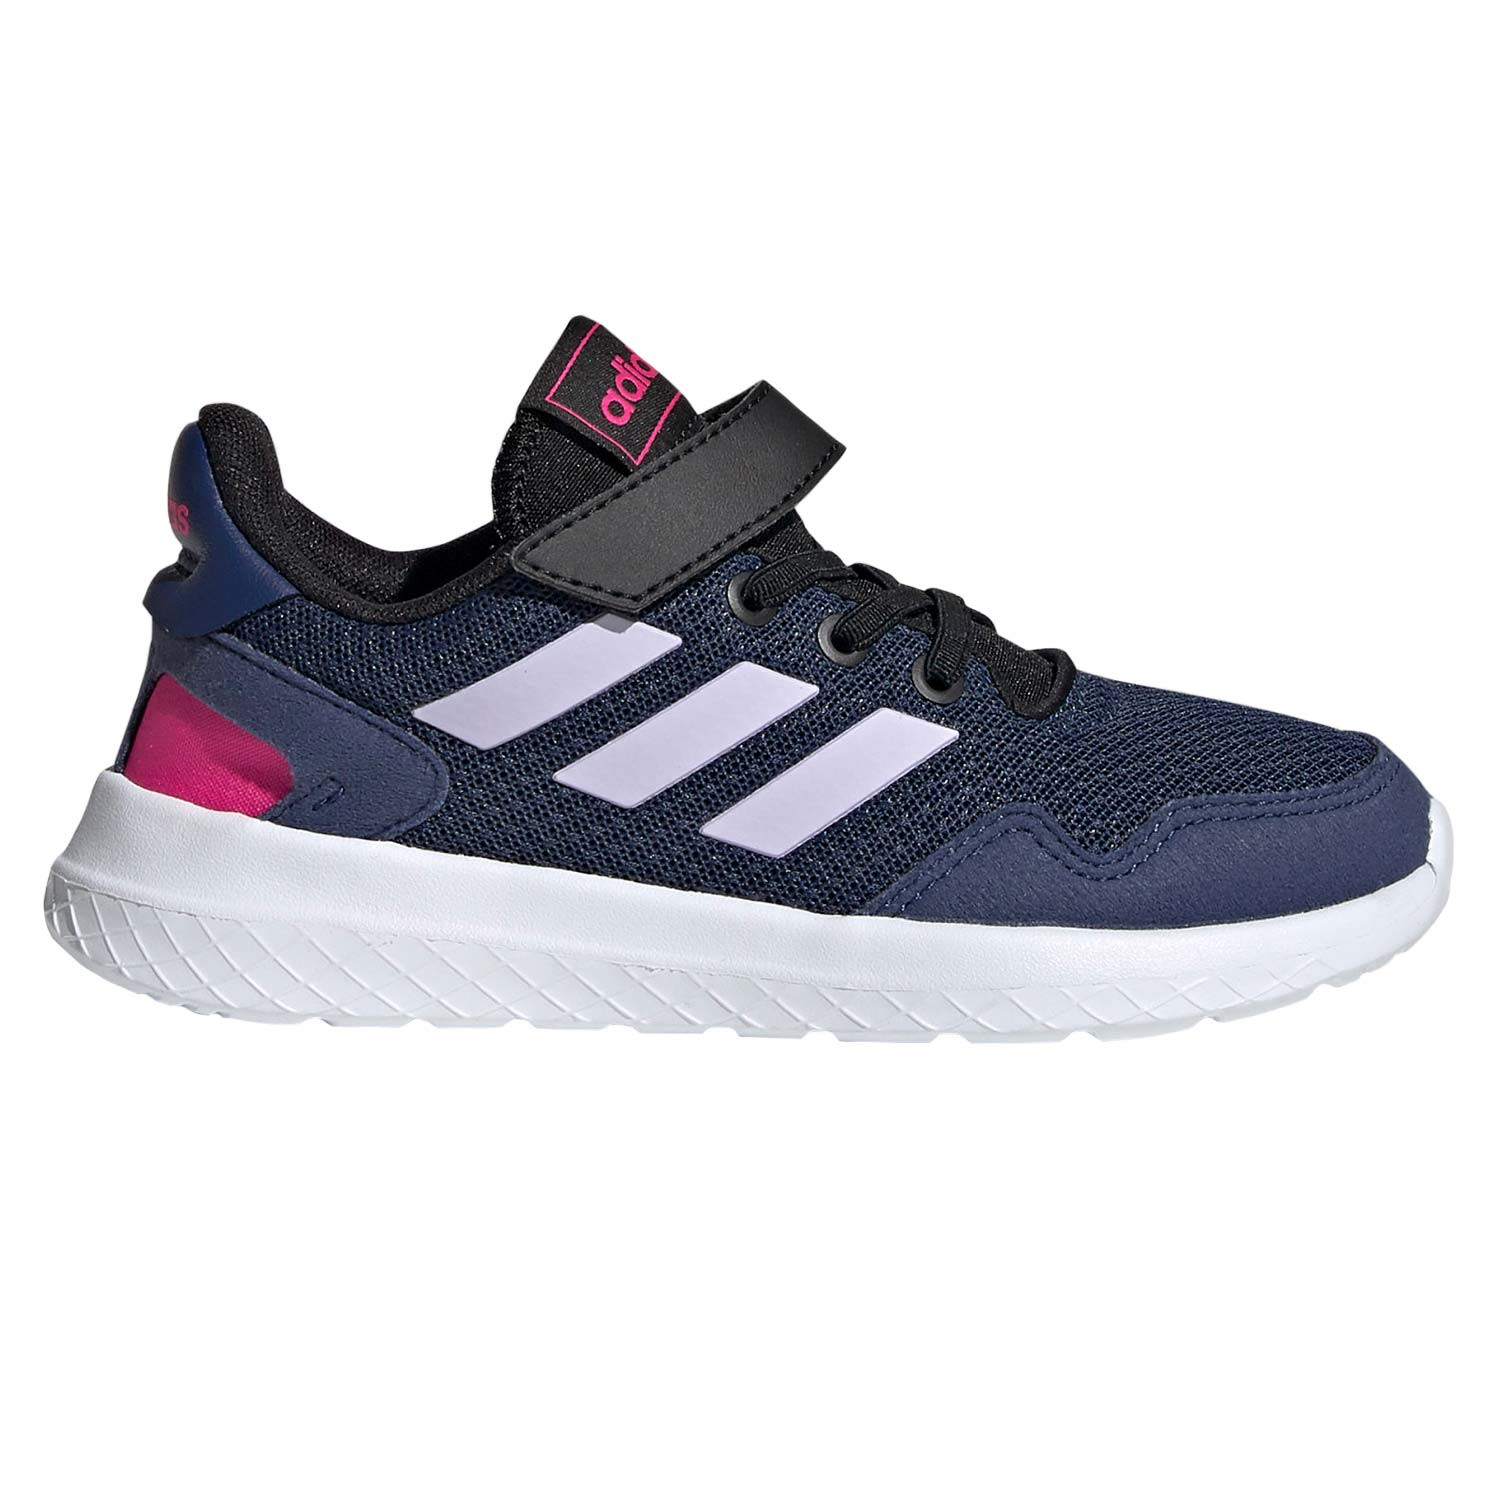 Archivo Chaussure Fille ADIDAS ROSE pas cher - Baskets basses ...